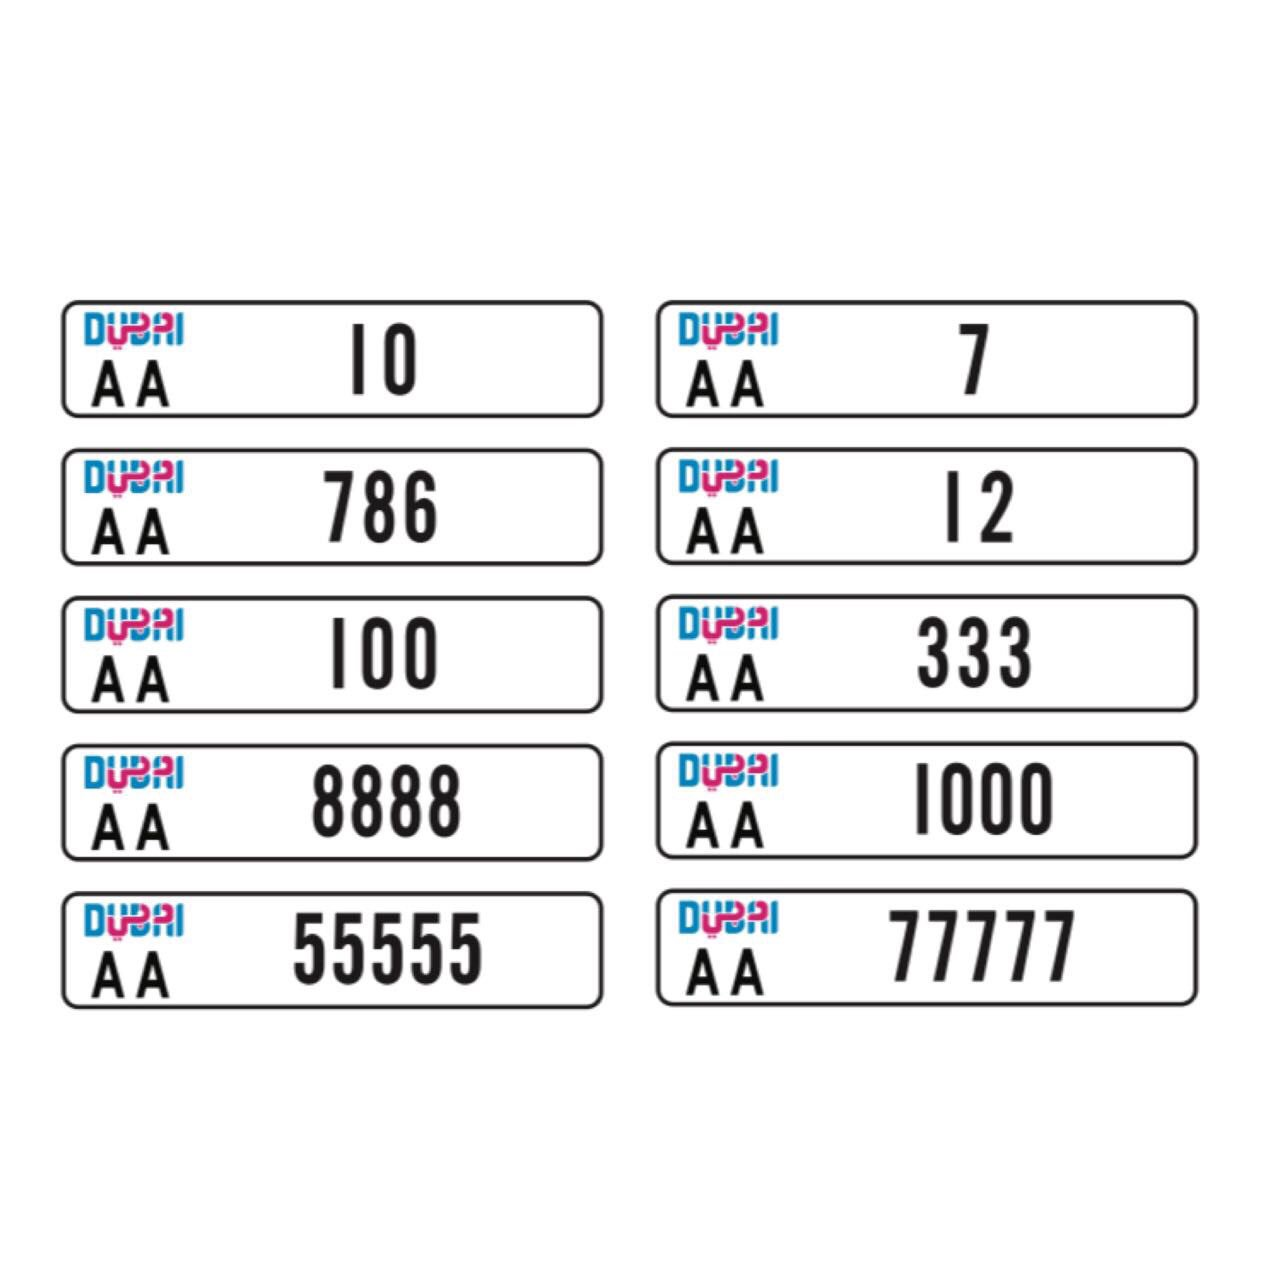 Rta Launched New Generation Of Vehicle Number Plates